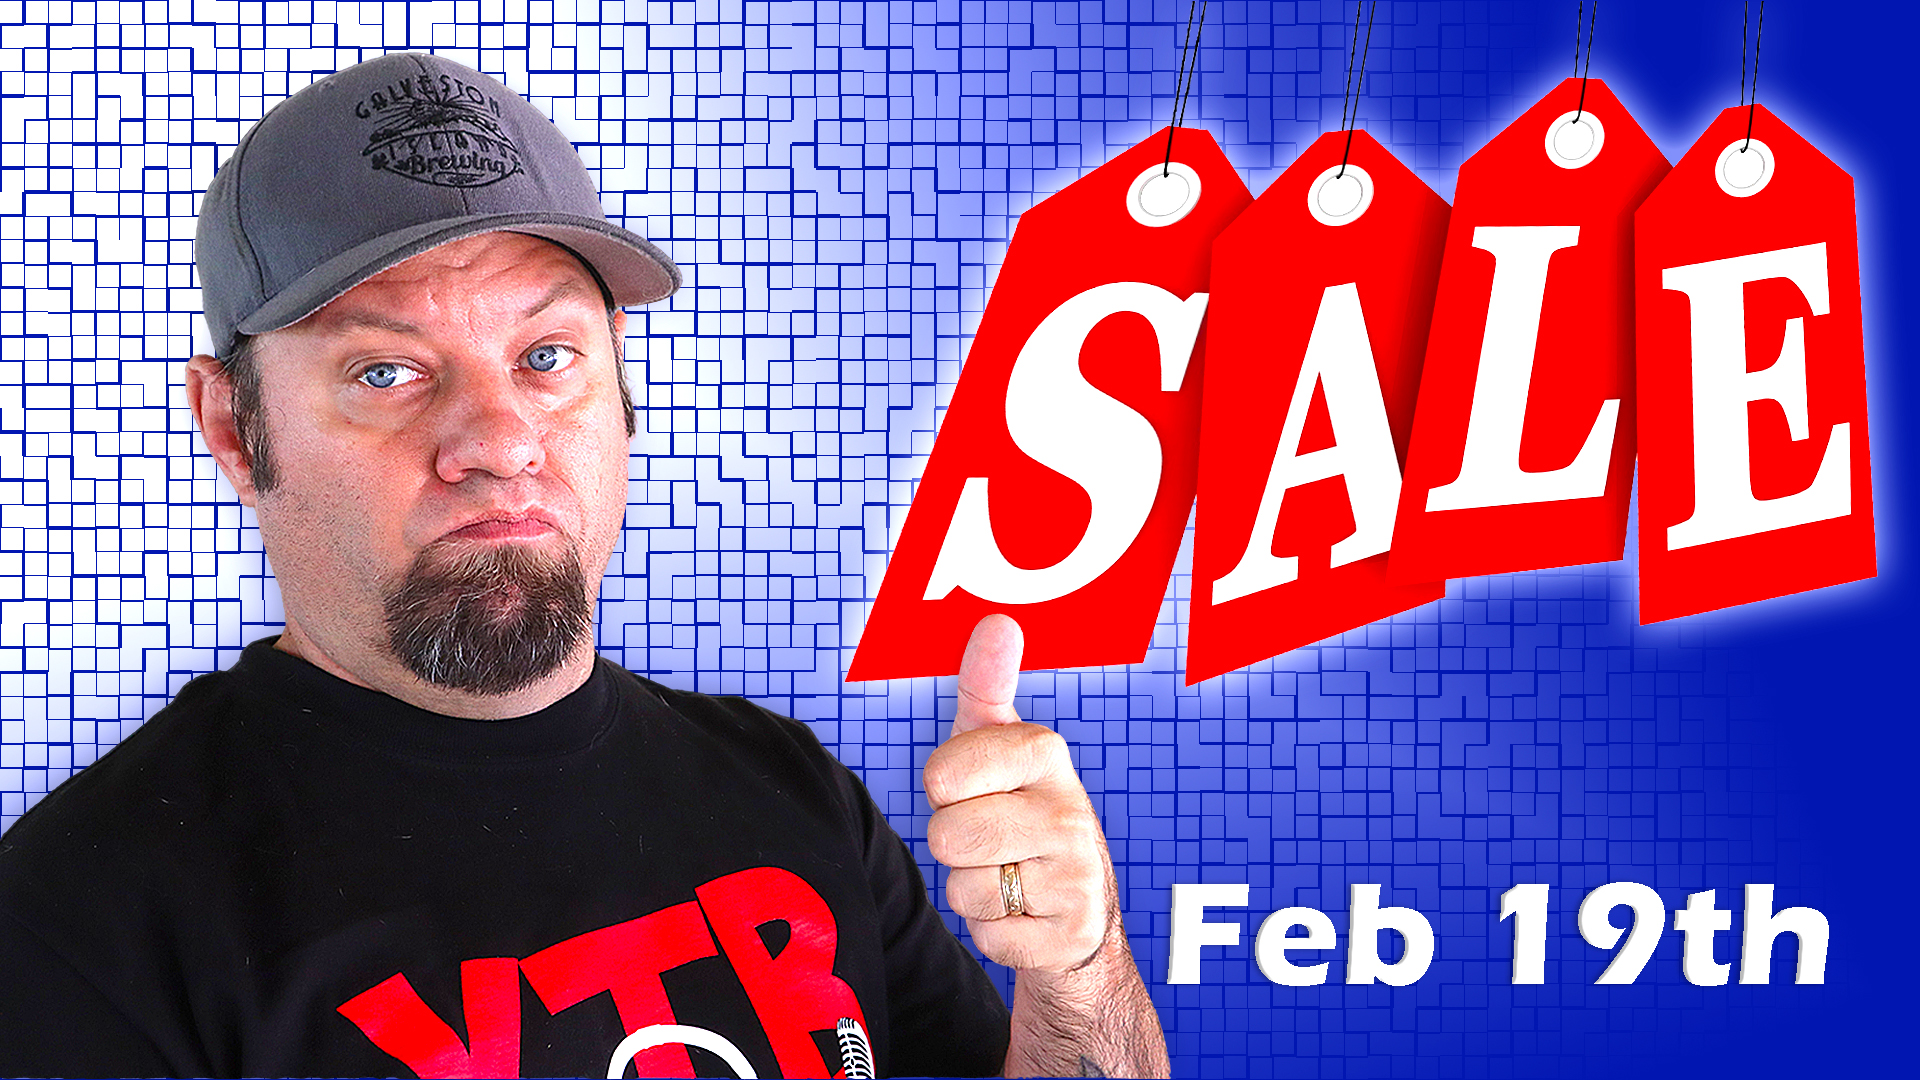 Episode 557: Ham Radio Shopping Deals for February 19th